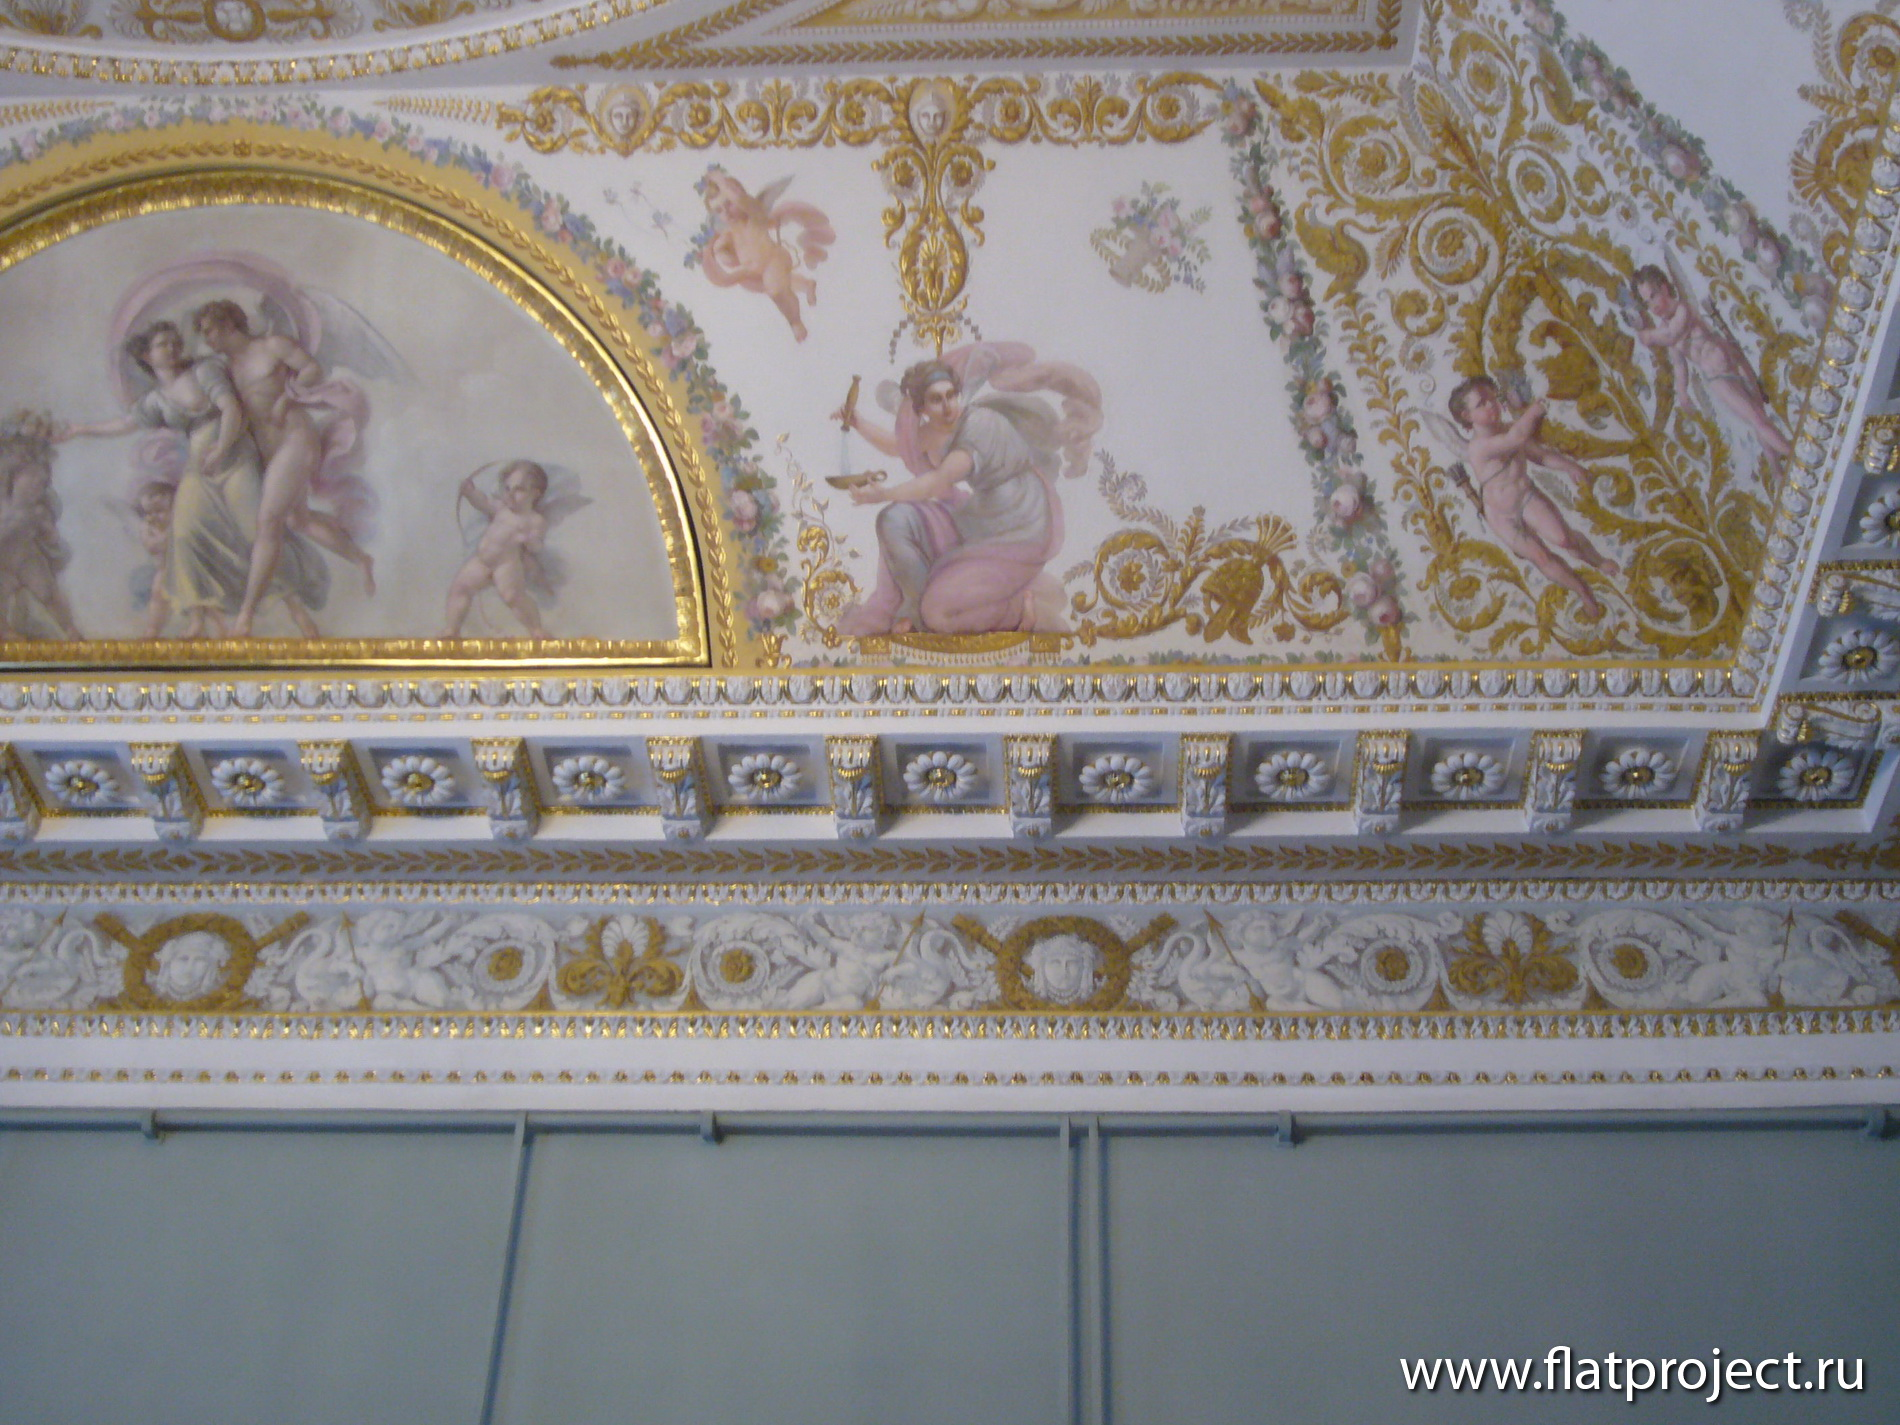 The State Russian museum interiors – photo 51